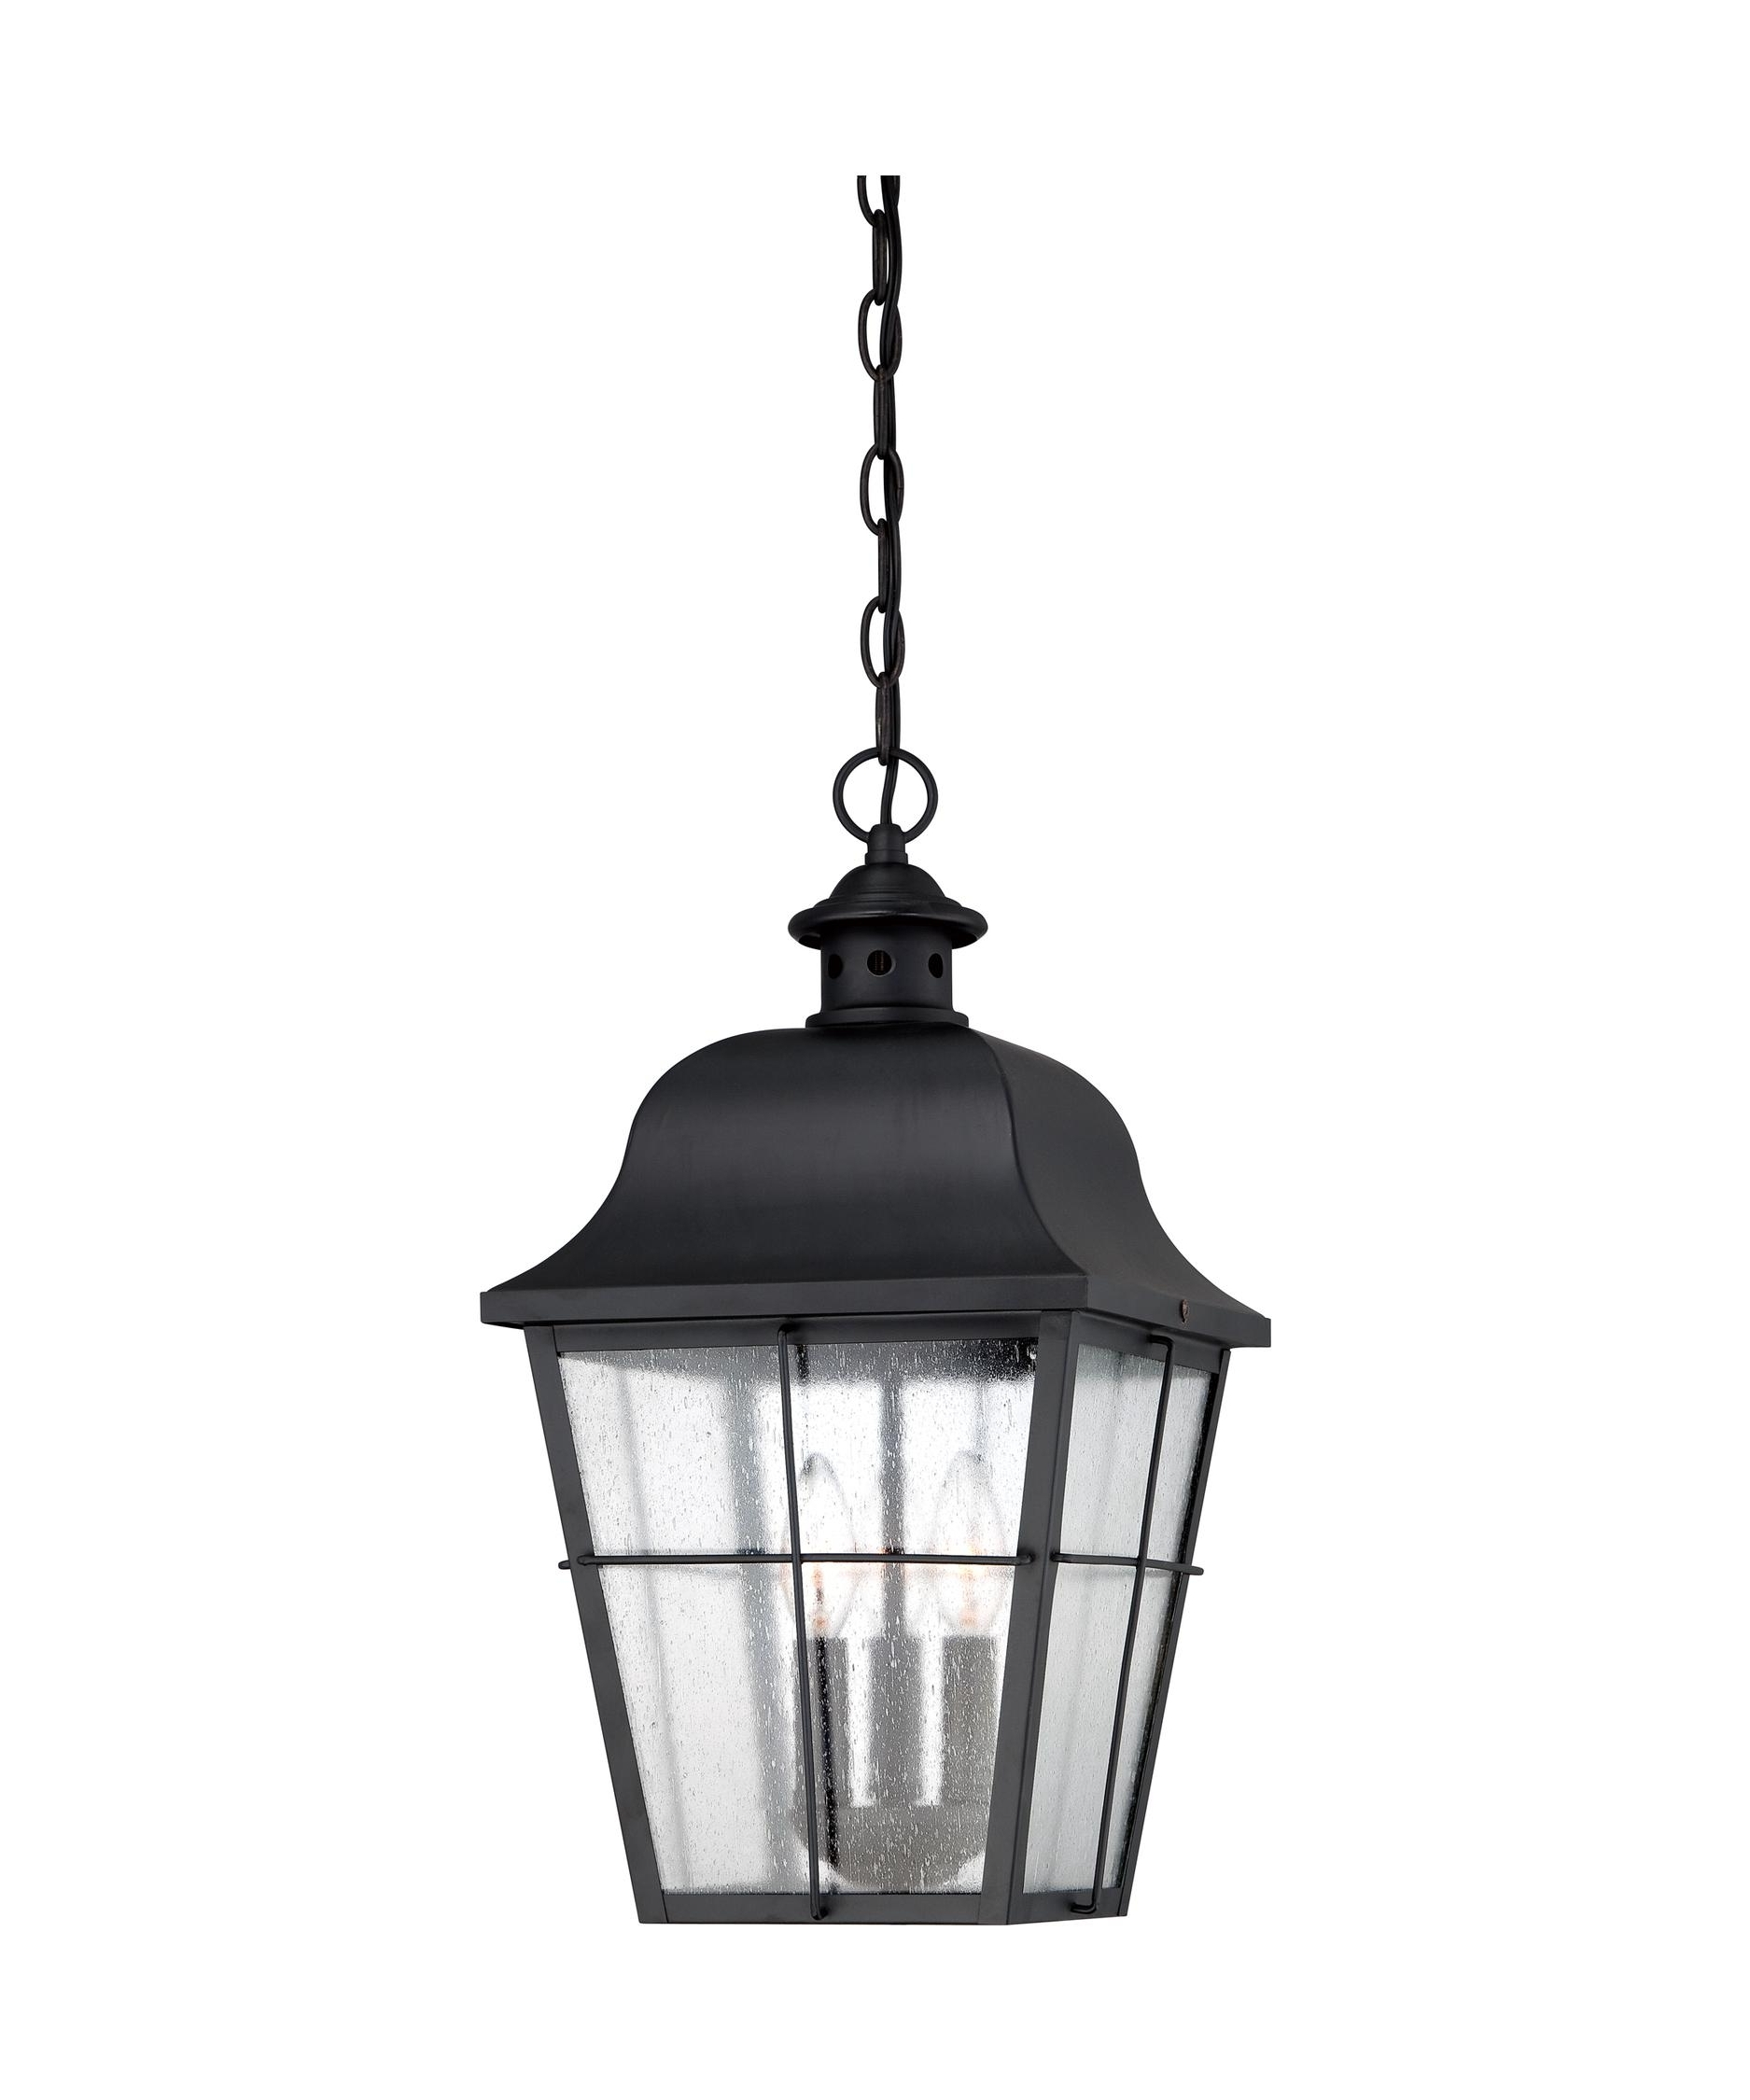 Quoizel Outdoor Hanging Lights With Regard To Well Liked Quoizel Mhe1910 Millhouse 10 Inch Wide 3 Light Outdoor Hanging (Gallery 11 of 20)